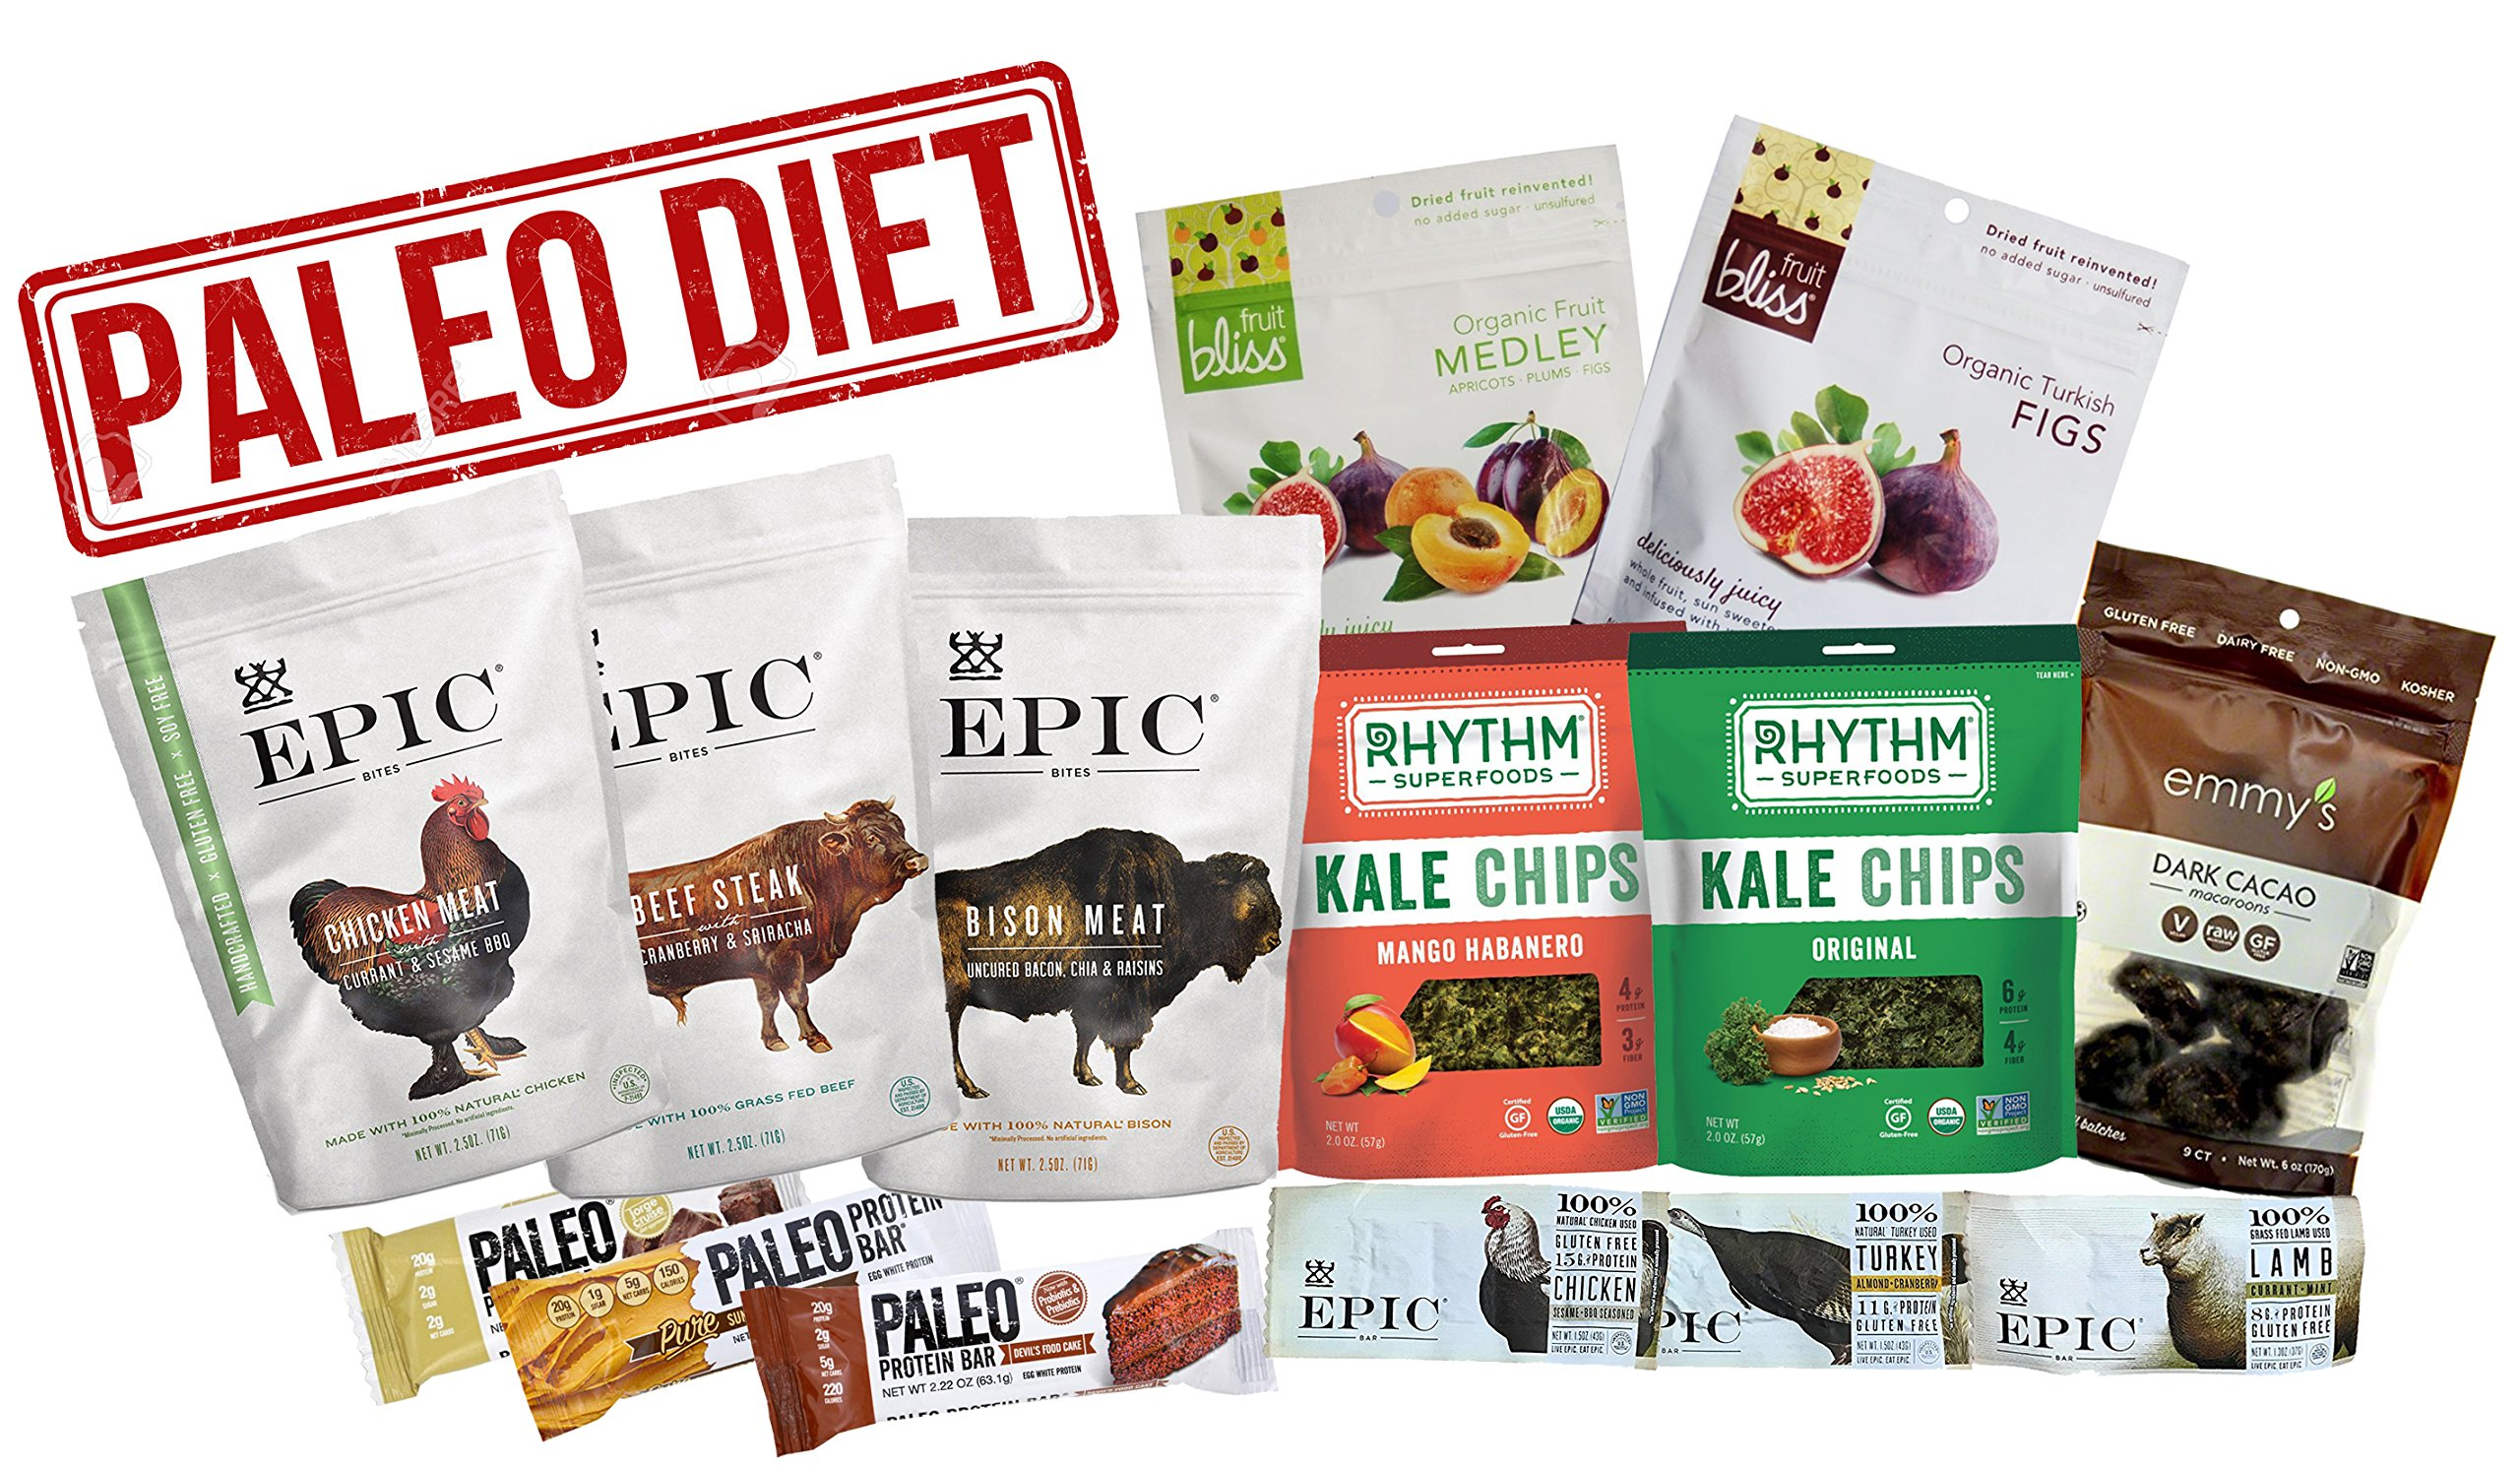 Amazon's Best Paleo Diet Variety Snack Pack of 14 Delicious Paleo Food Snacks by Amazon's Best